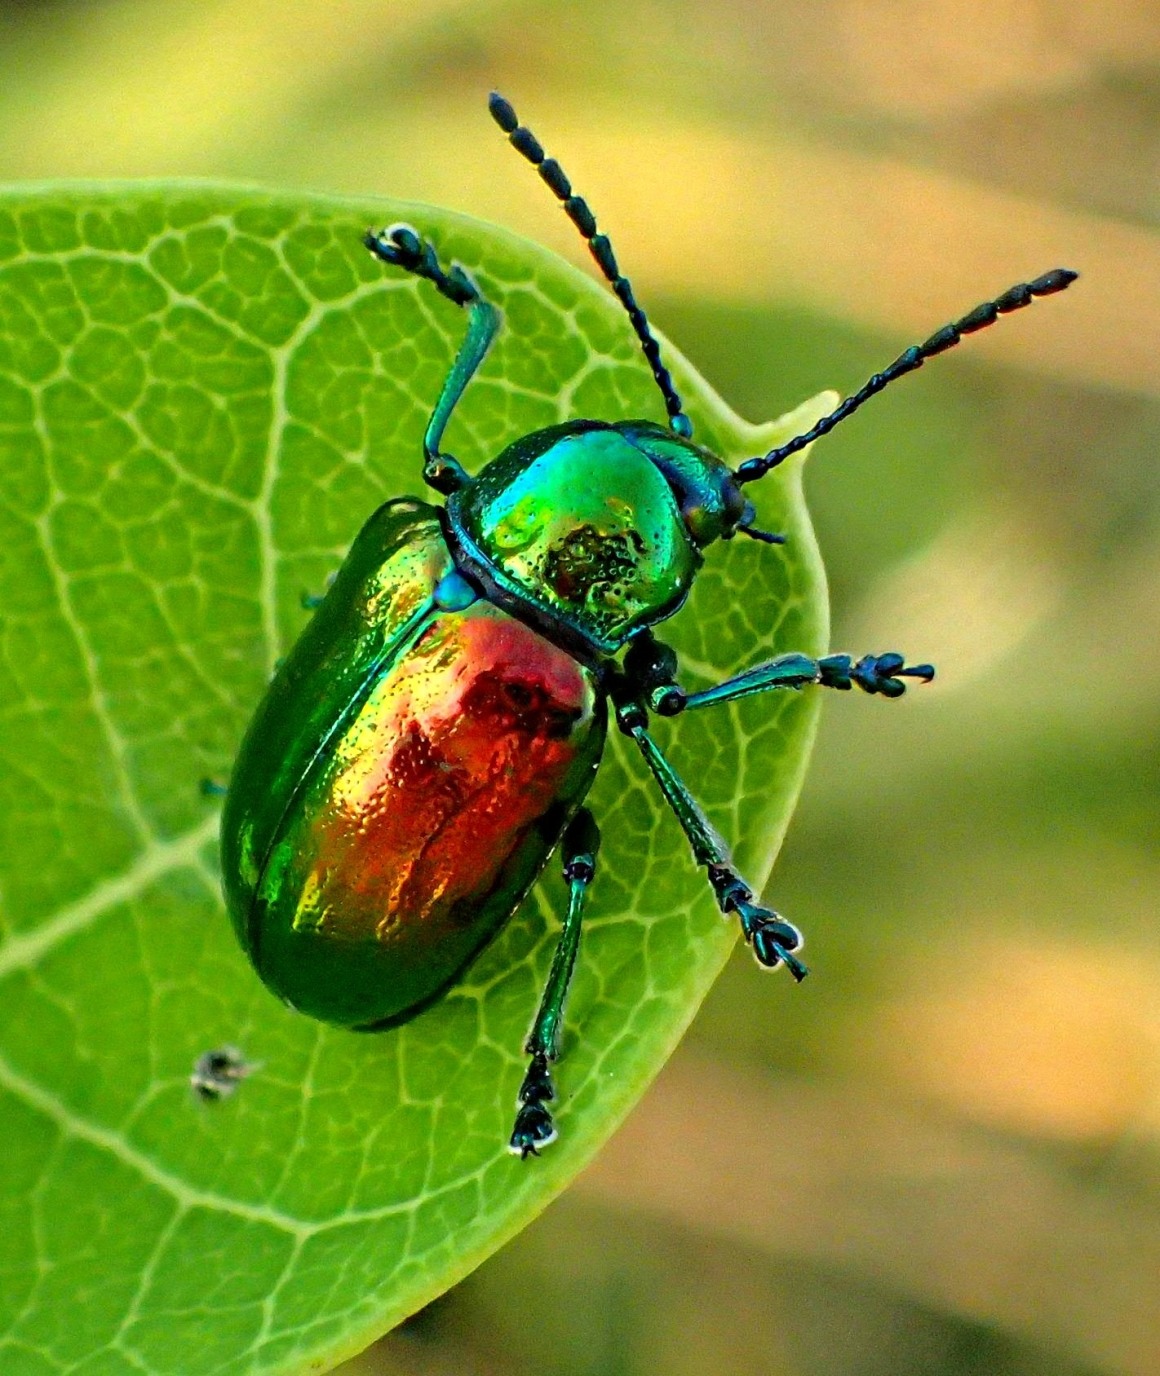 A Dogbane Leaf Beetle with an iridescent sheen that not even Harley Davidson motorcycle gas-tanks are capable of!  Photo by Thomas Peace 2014